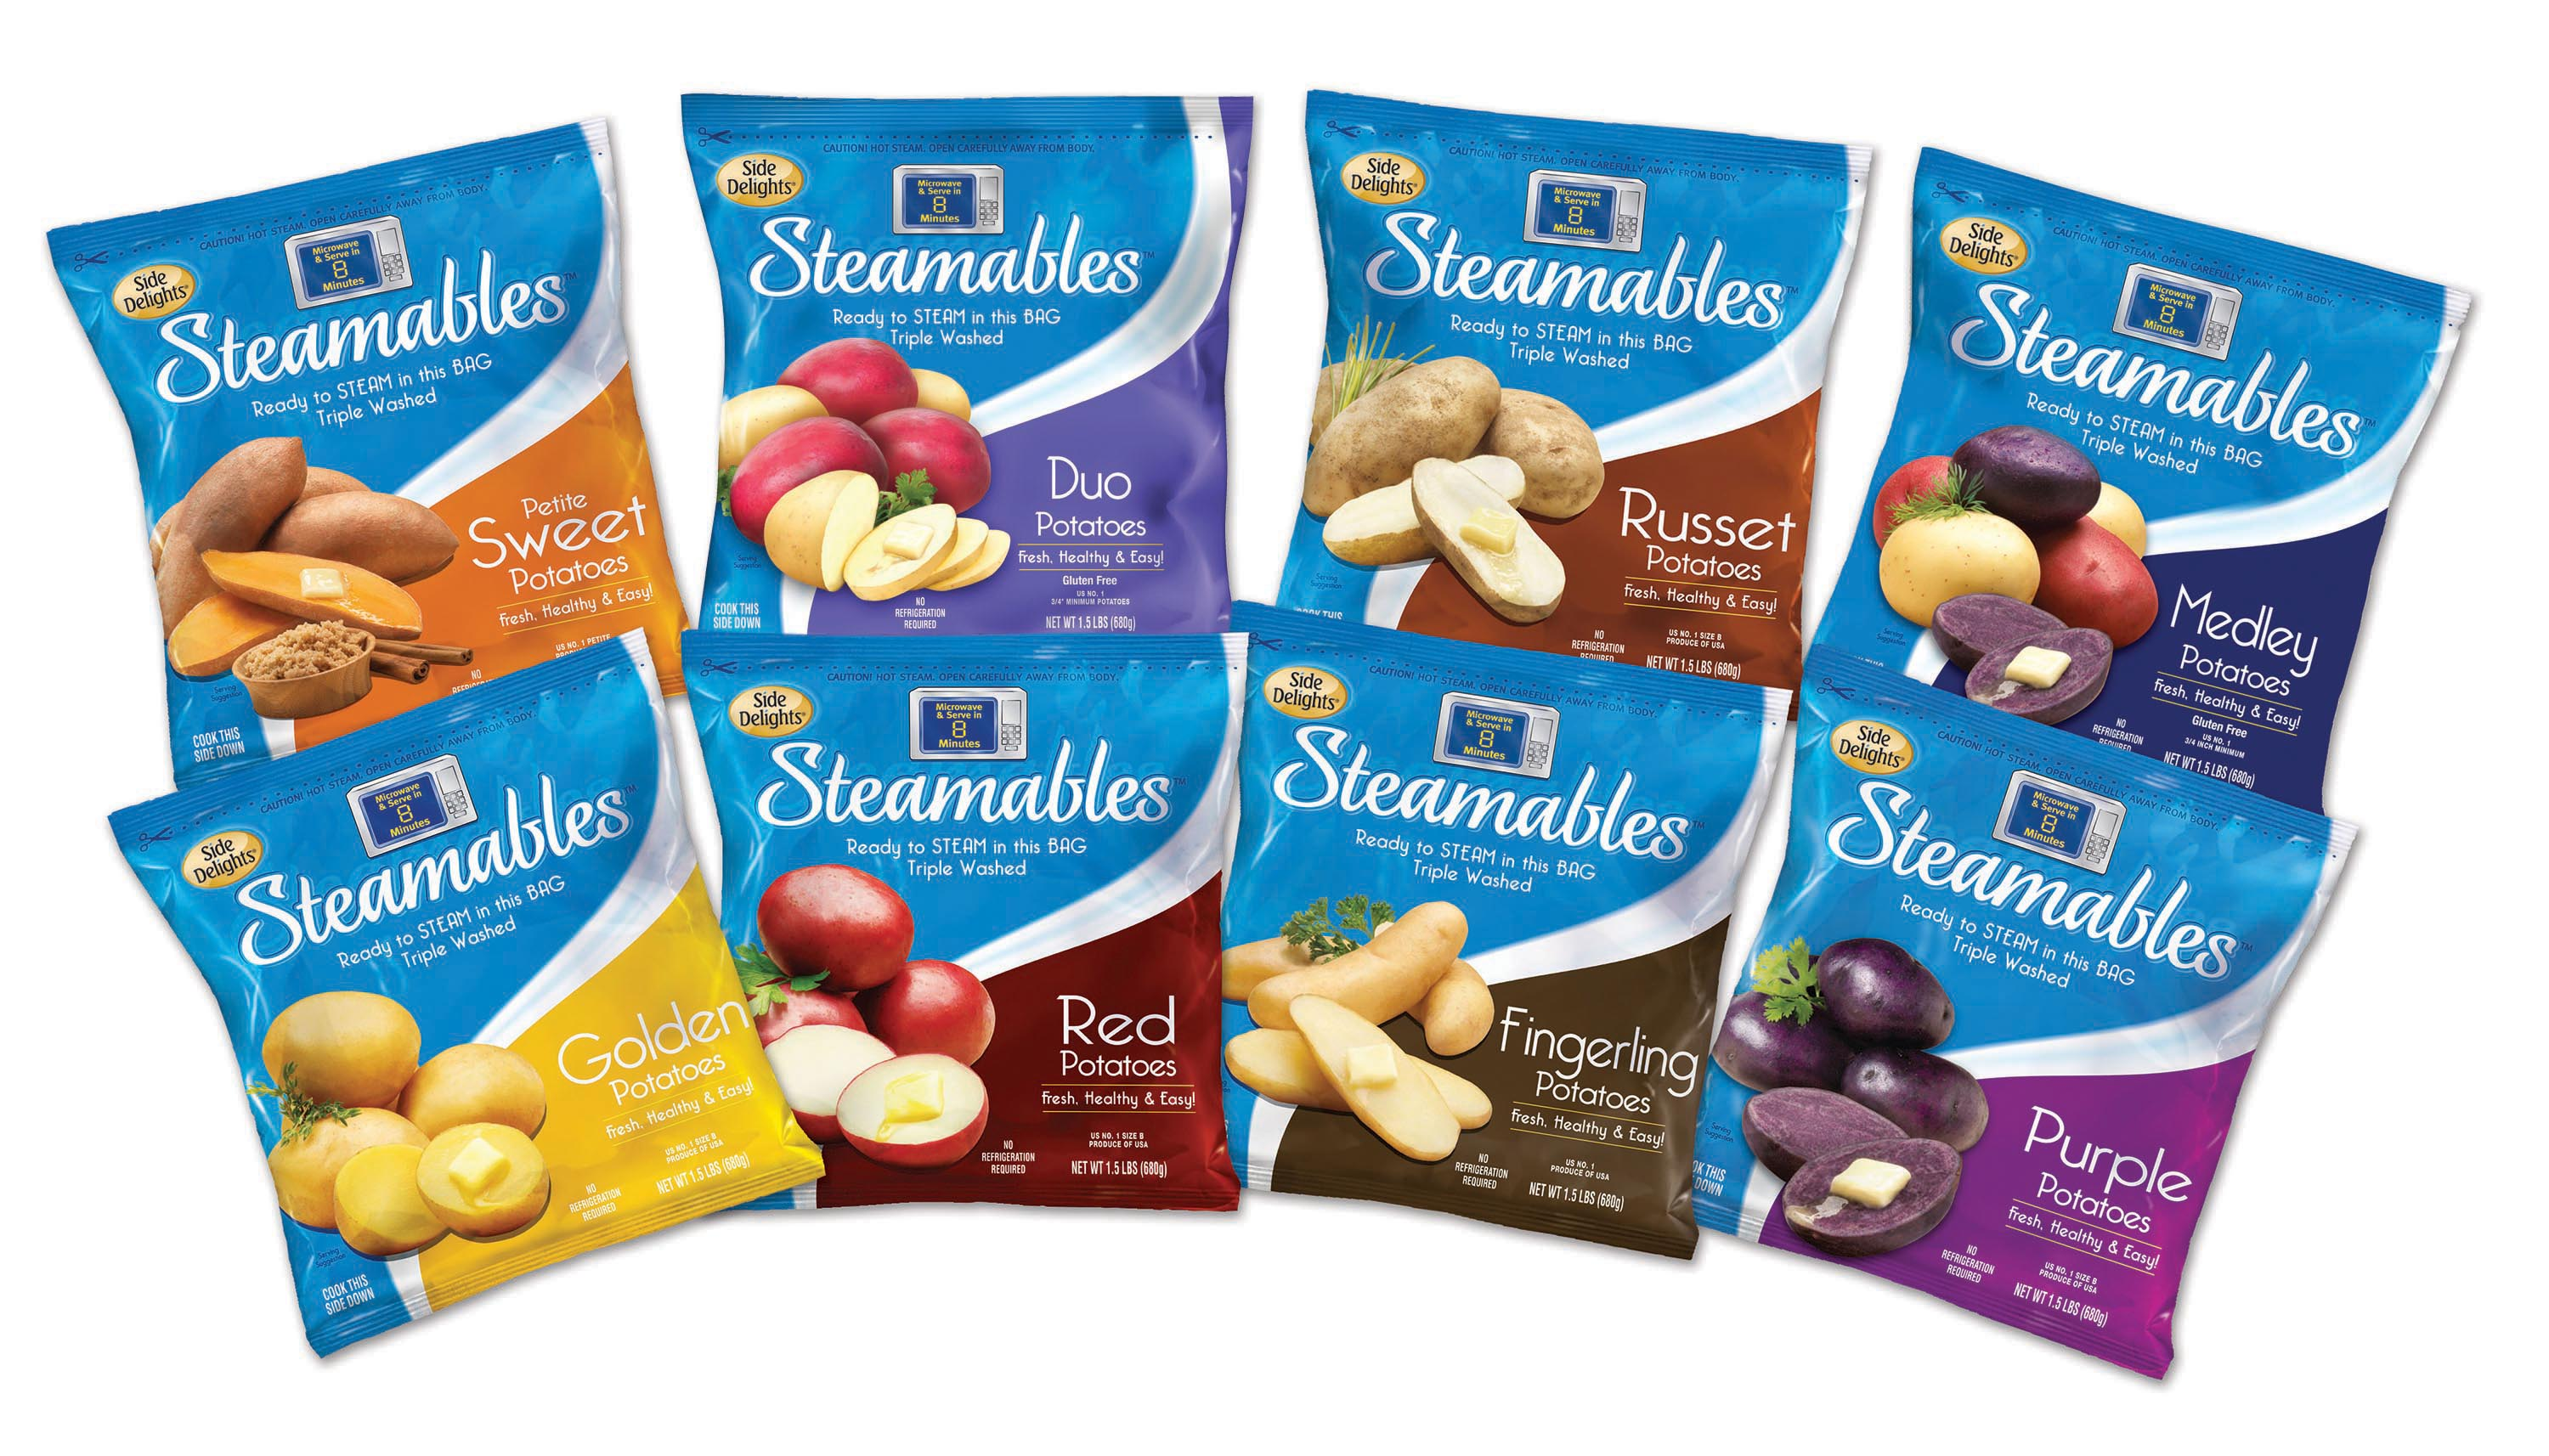 Steamables™ - Side Delights on microwave chicken, microwave grits, microwave pie, microwave baked potatoes, microwave red potatoes, yams vs sweet potatoes, microwave seasoned potatoes, microwave sweet potatoes, microwave scalloped potatoes, microwave boiled potatoes, microwave pot roast, microwave baby potatoes, microwave potato recipes, microwave cornbread, microwave lasagna, microwave baked potato plastic wrap, microwave hash brown potatoes, microwave peach cobbler, crazy potatoes, butter gold potatoes,